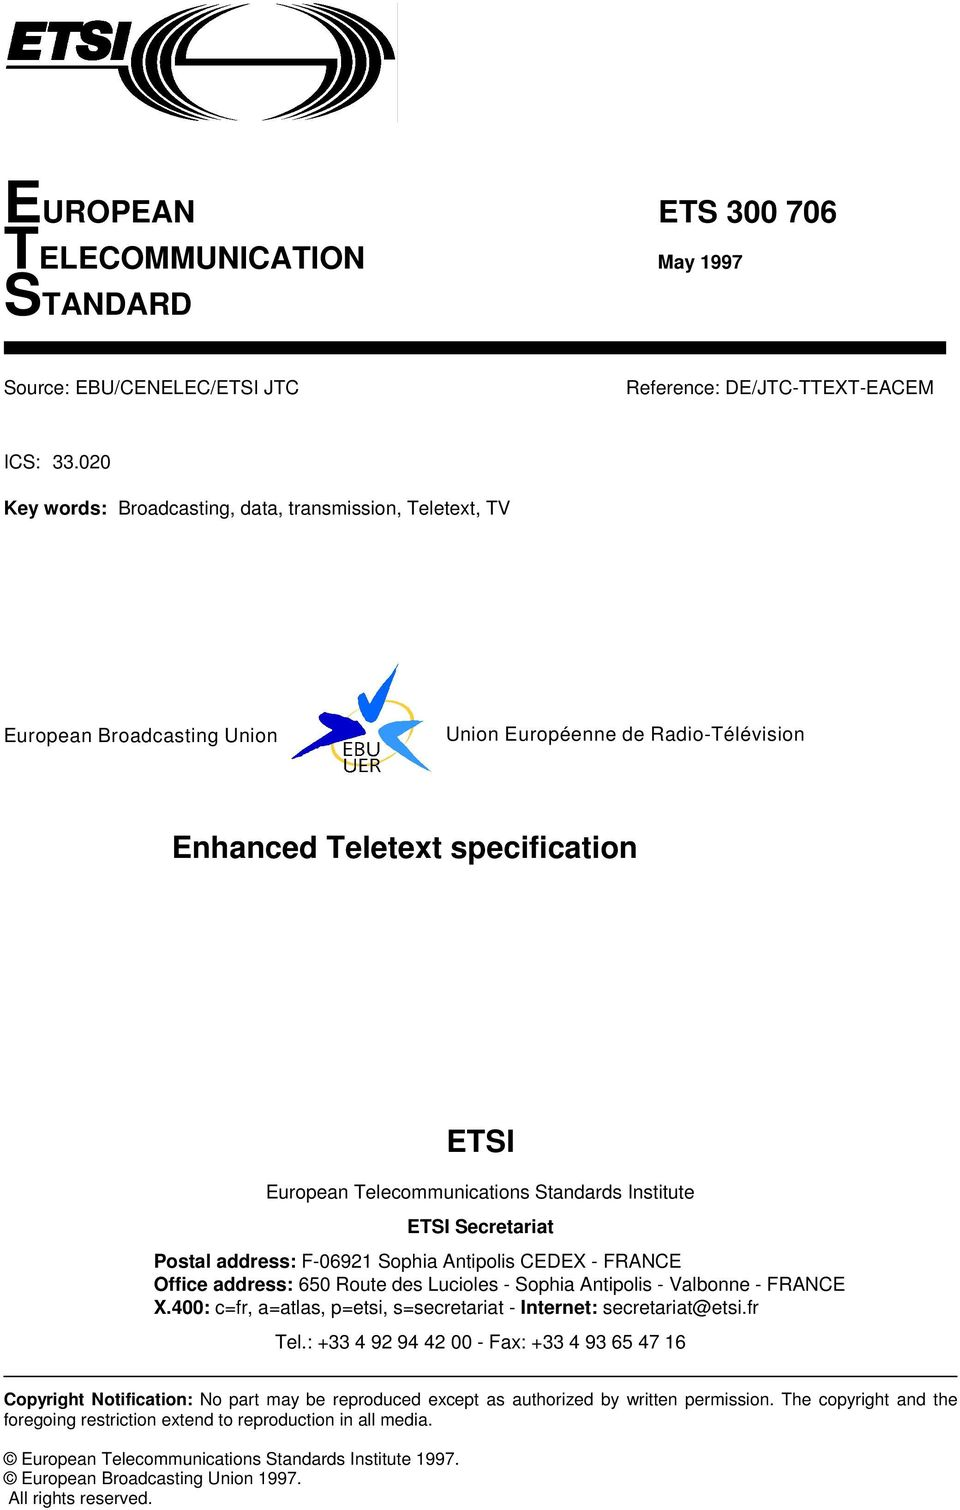 Standards Institute ETSI Secretariat Postal address: F-06921 Sophia Antipolis CEDEX - FRANCE Office address: 650 Route des Lucioles - Sophia Antipolis - Valbonne - FRANCE X.